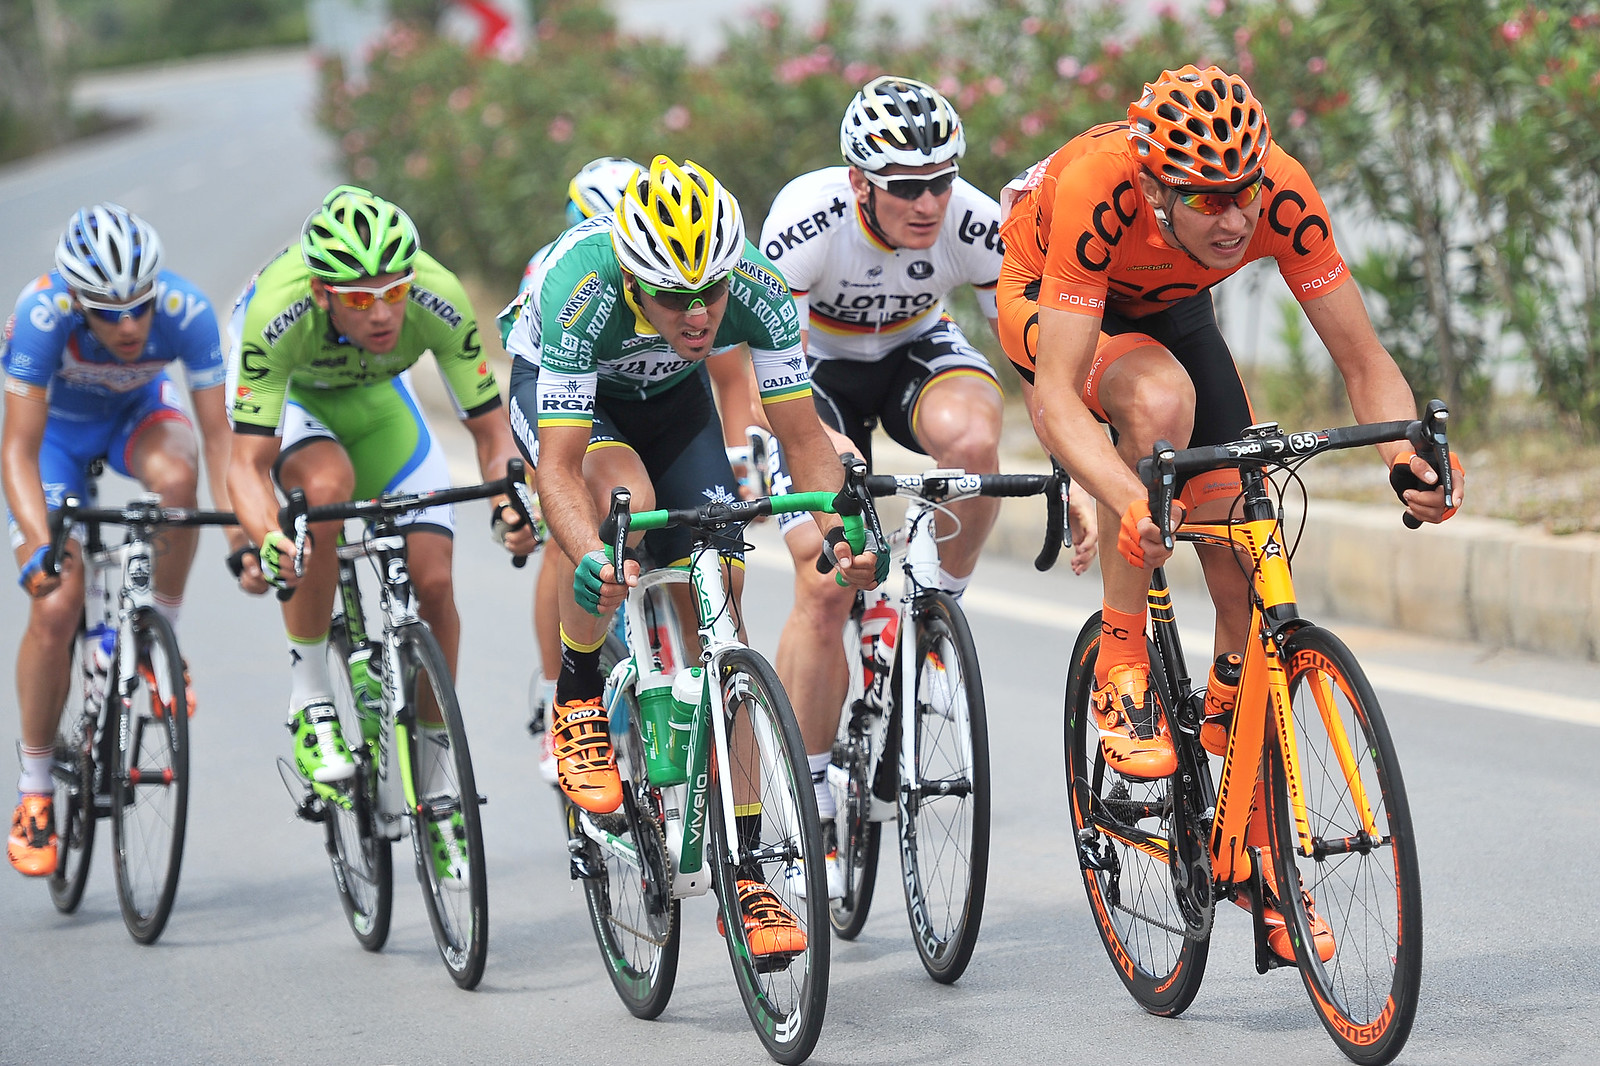 Cycling - Tour of Turkey - Stage 6 - 02.05.2014